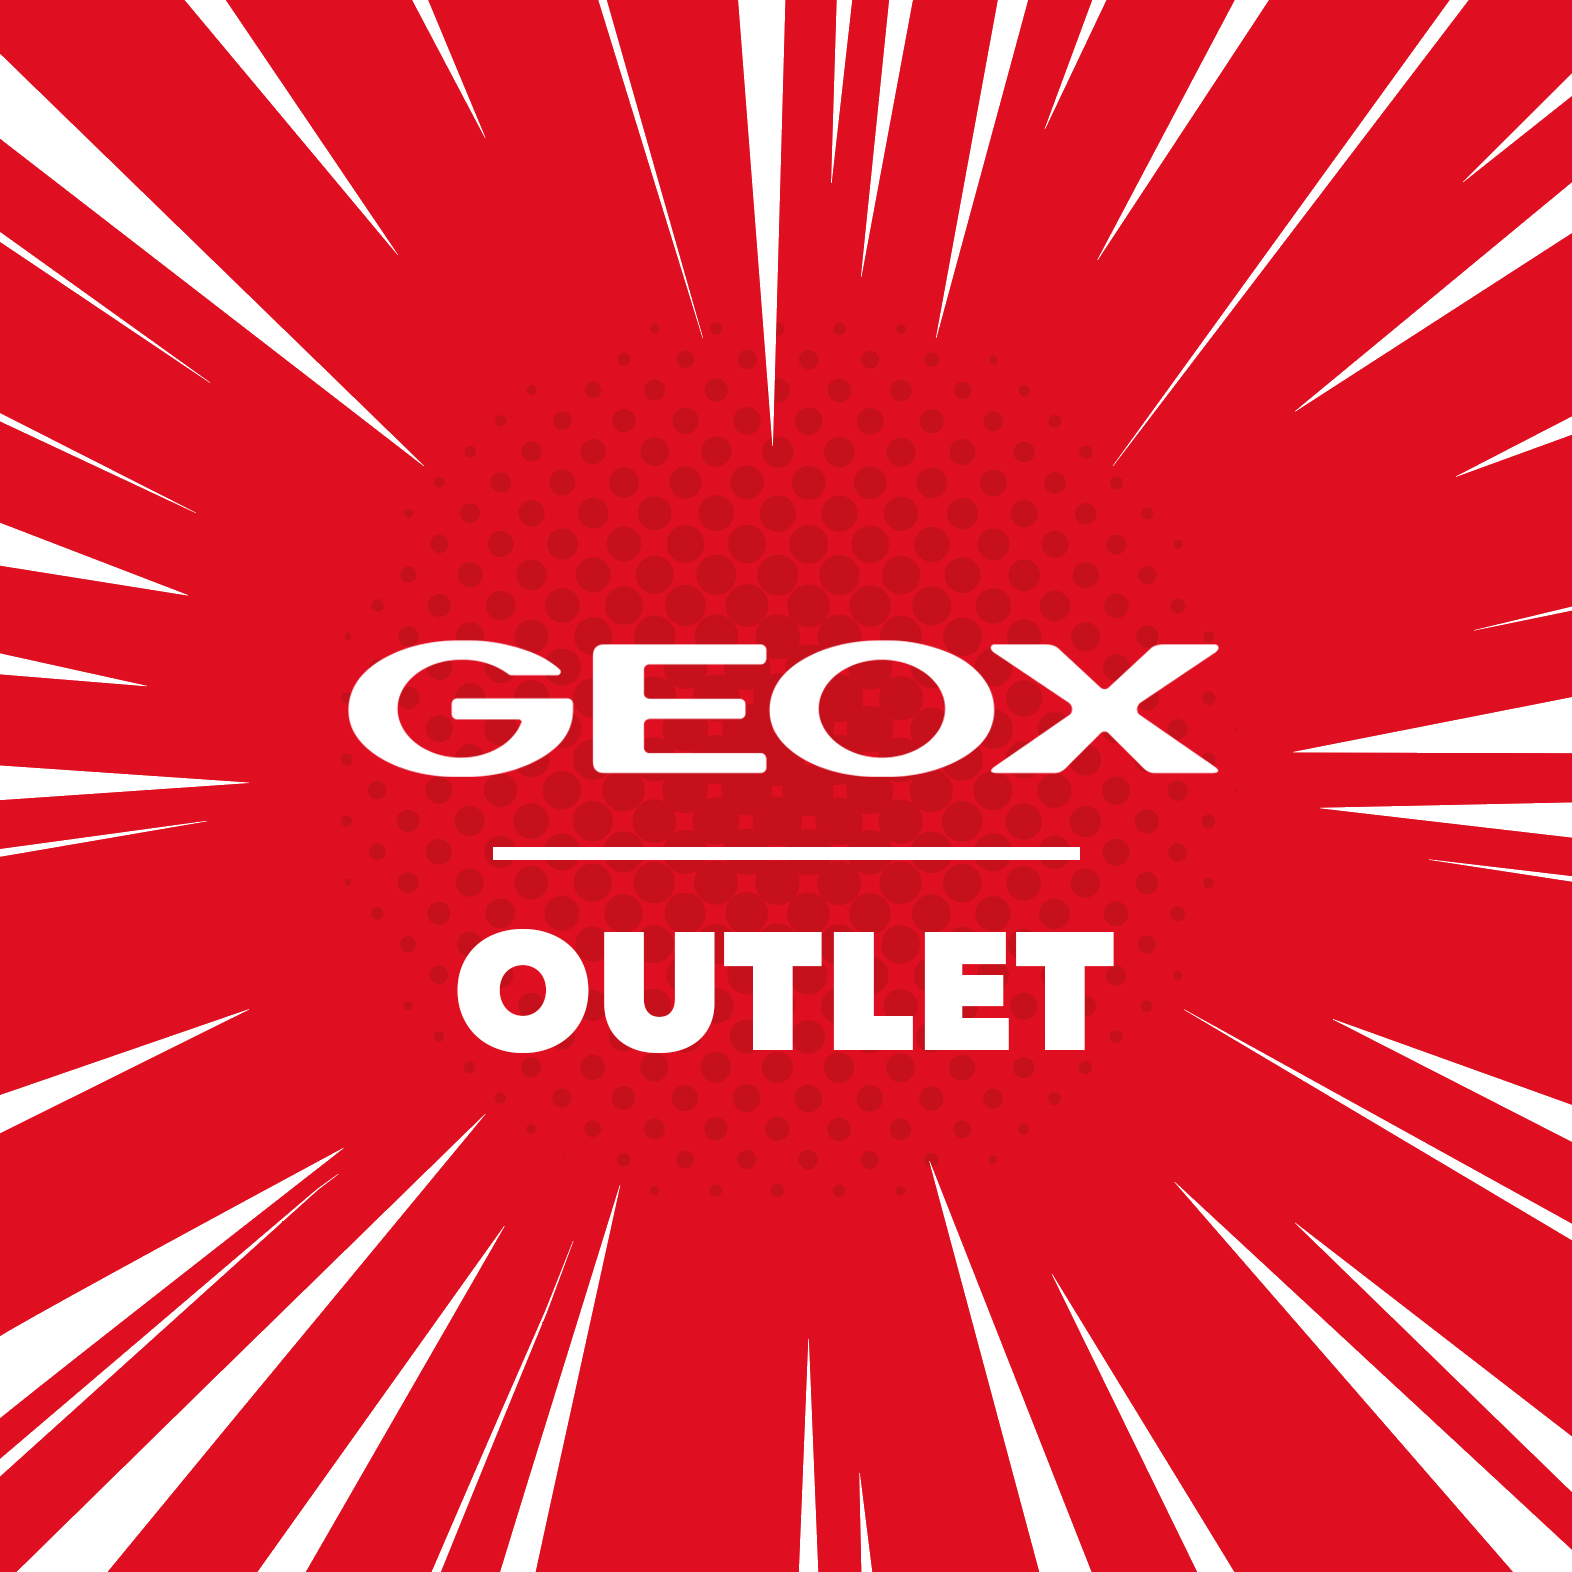 GEOX-outlet